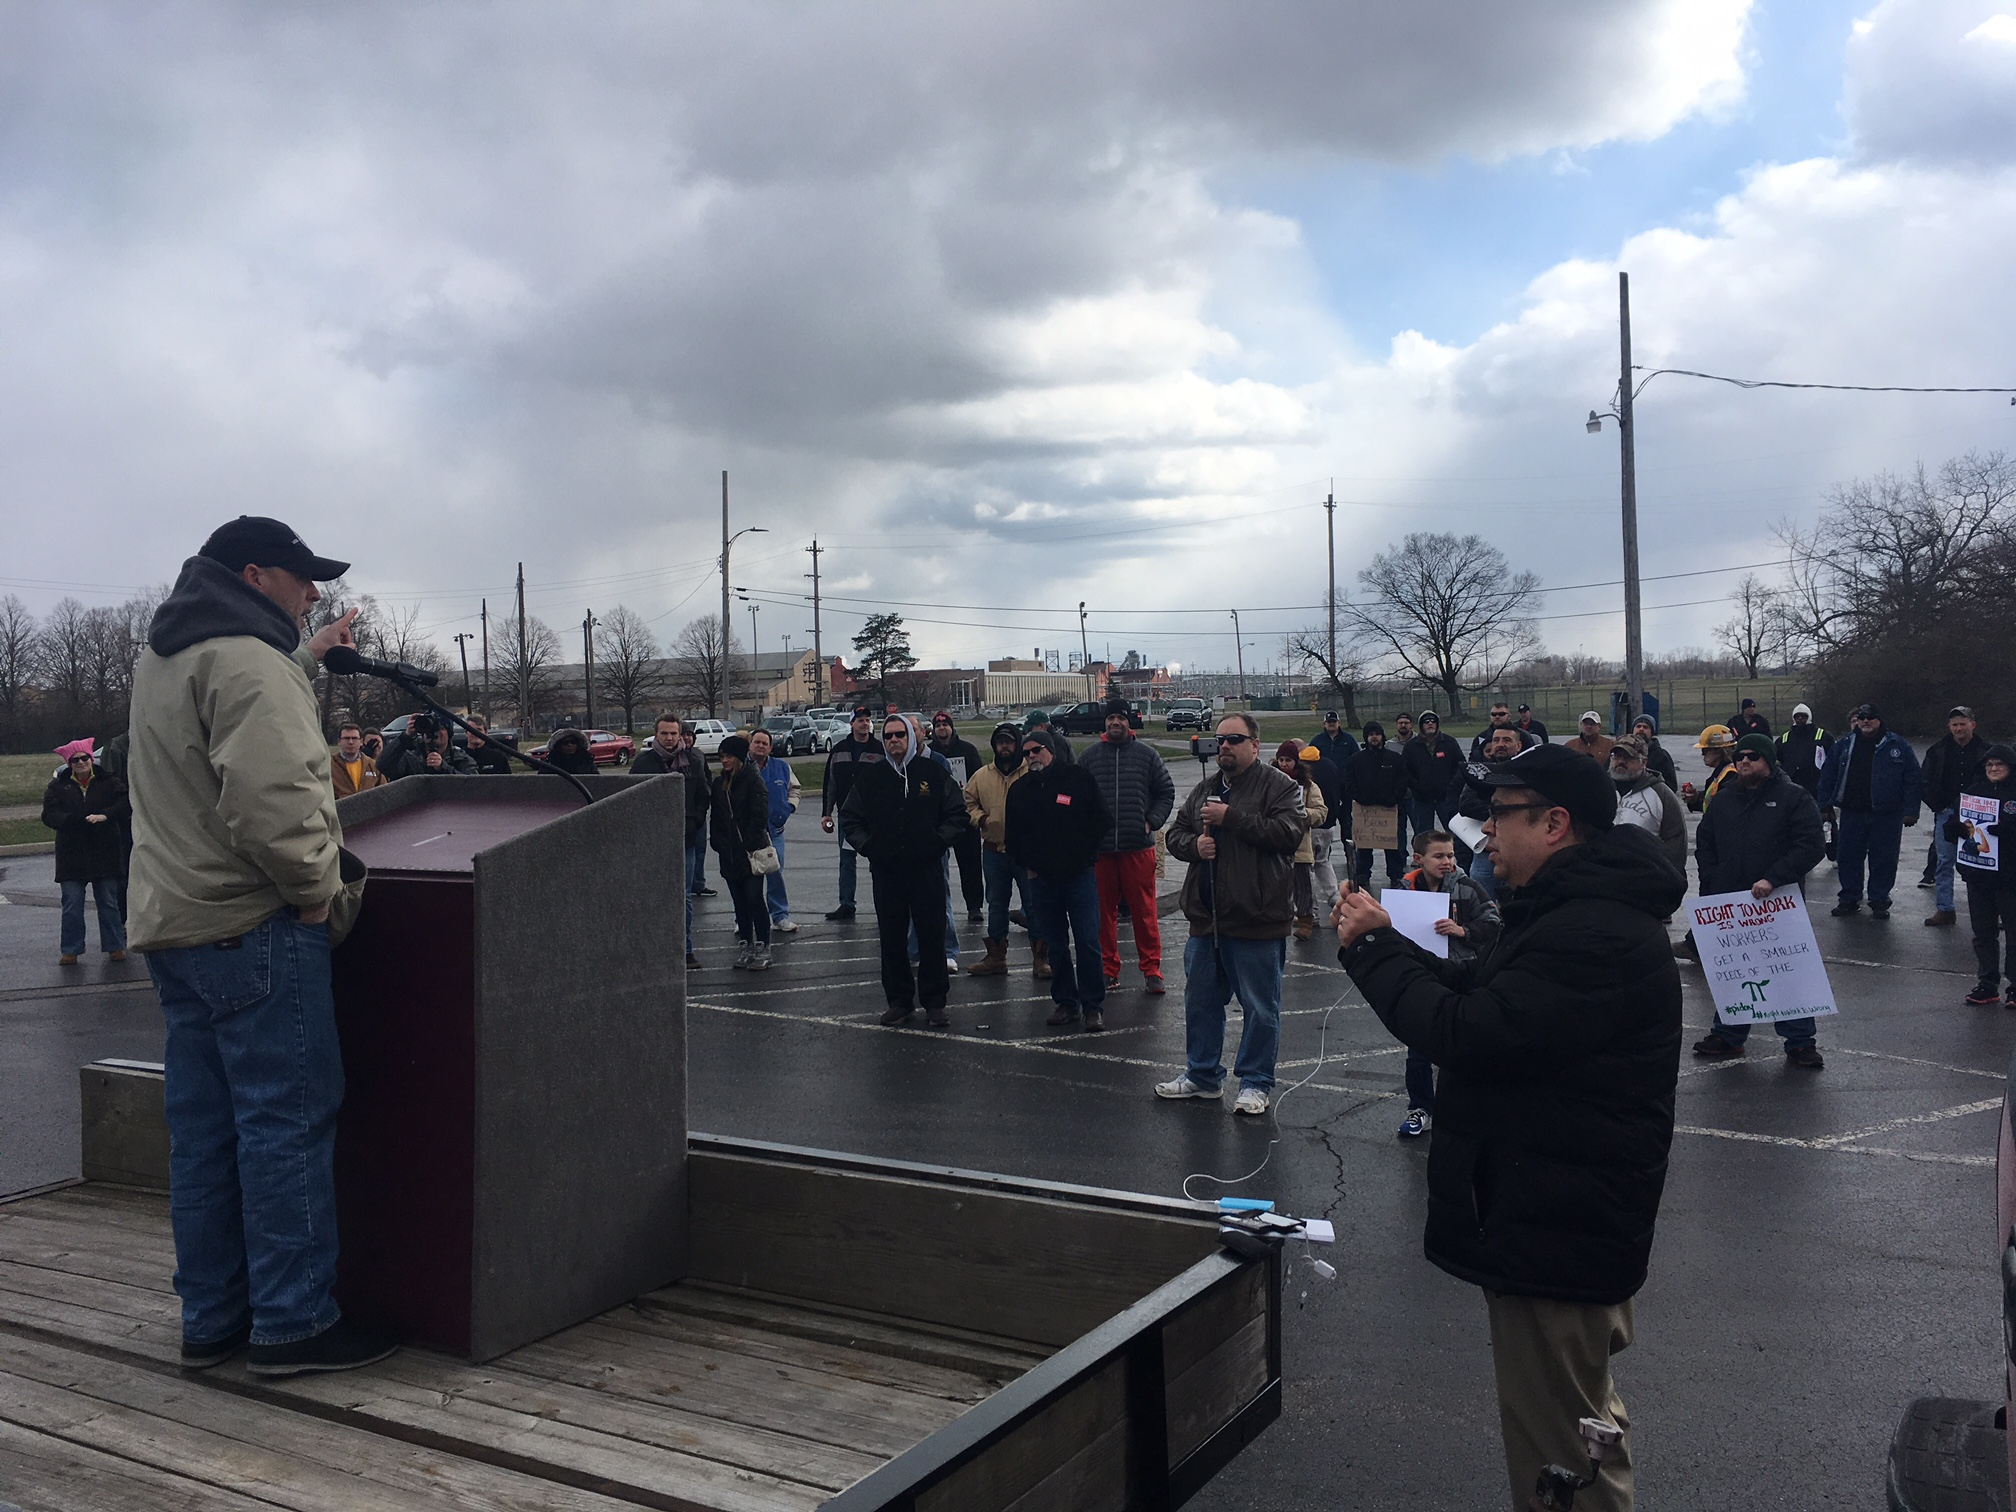 Machinists Union Hosts Rally To Stop Right To Work Is Wrong